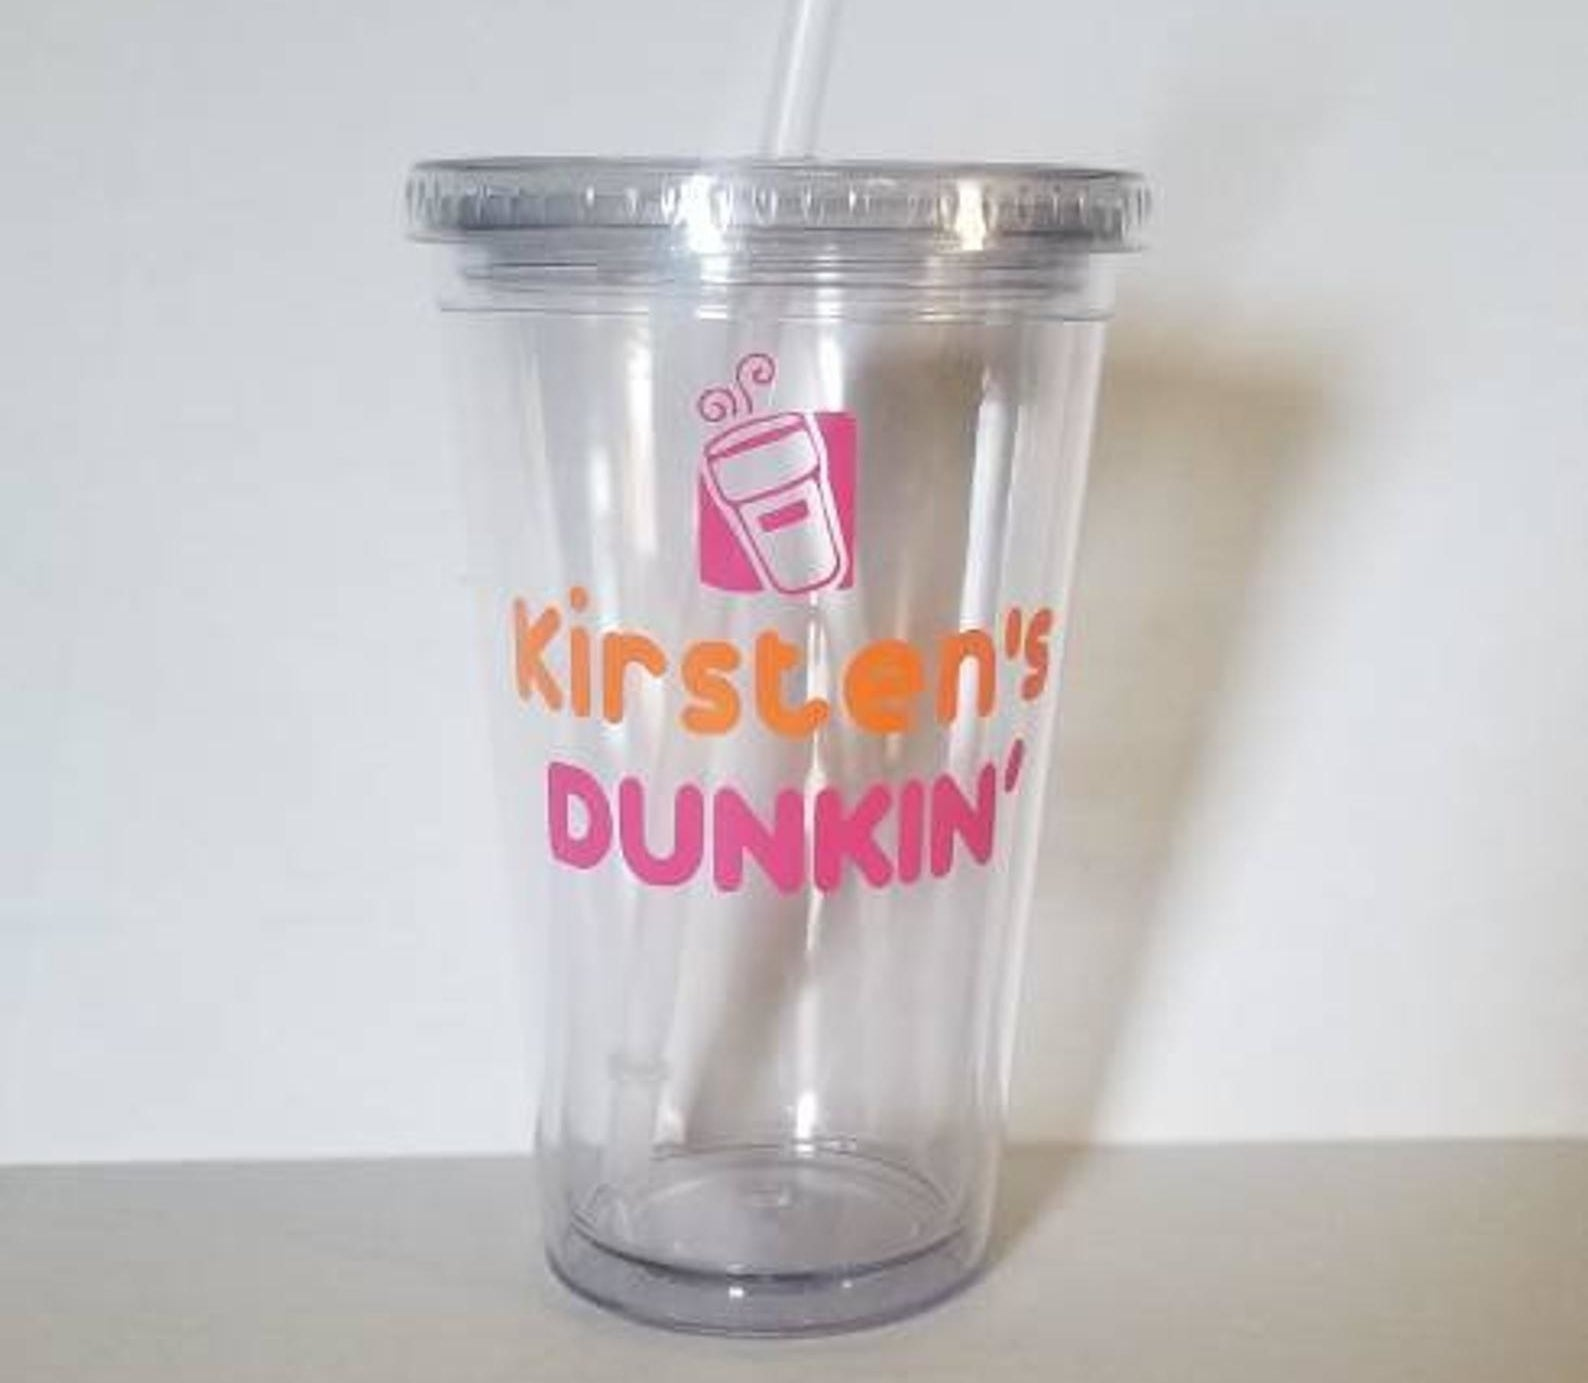 A reusable cup that says Kirsten's Dunkin